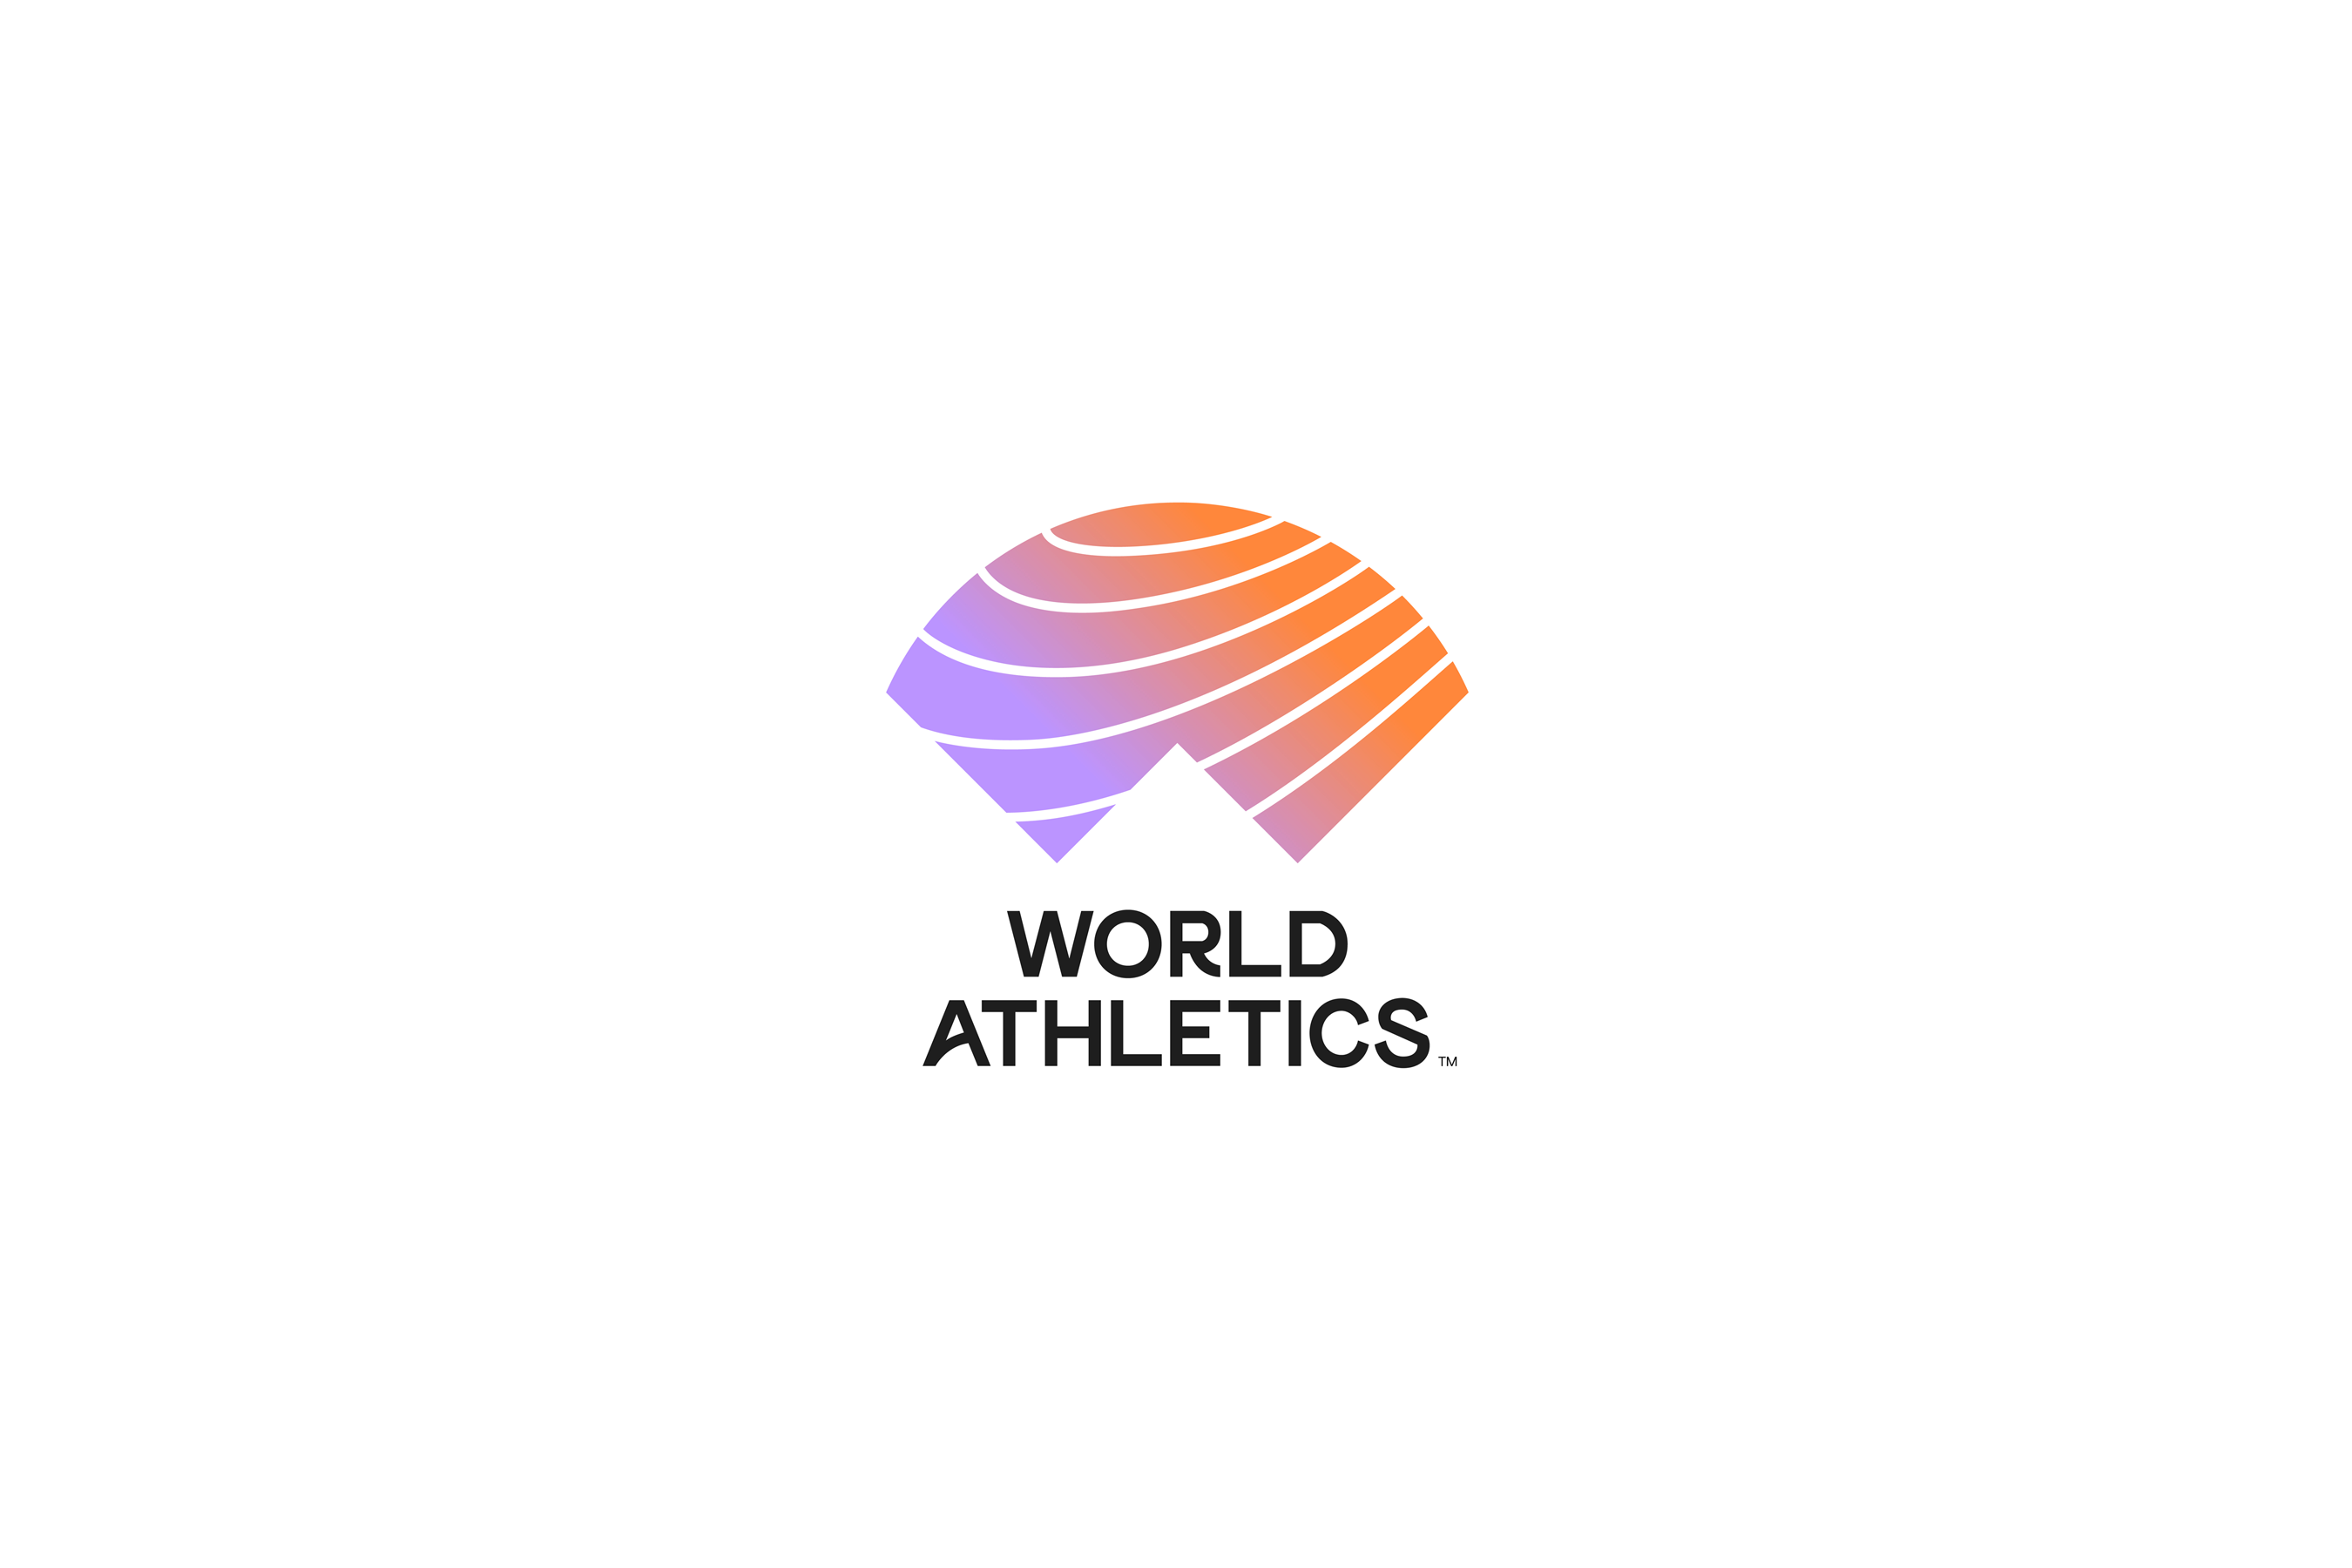 World Athletics logo (World Athletics)